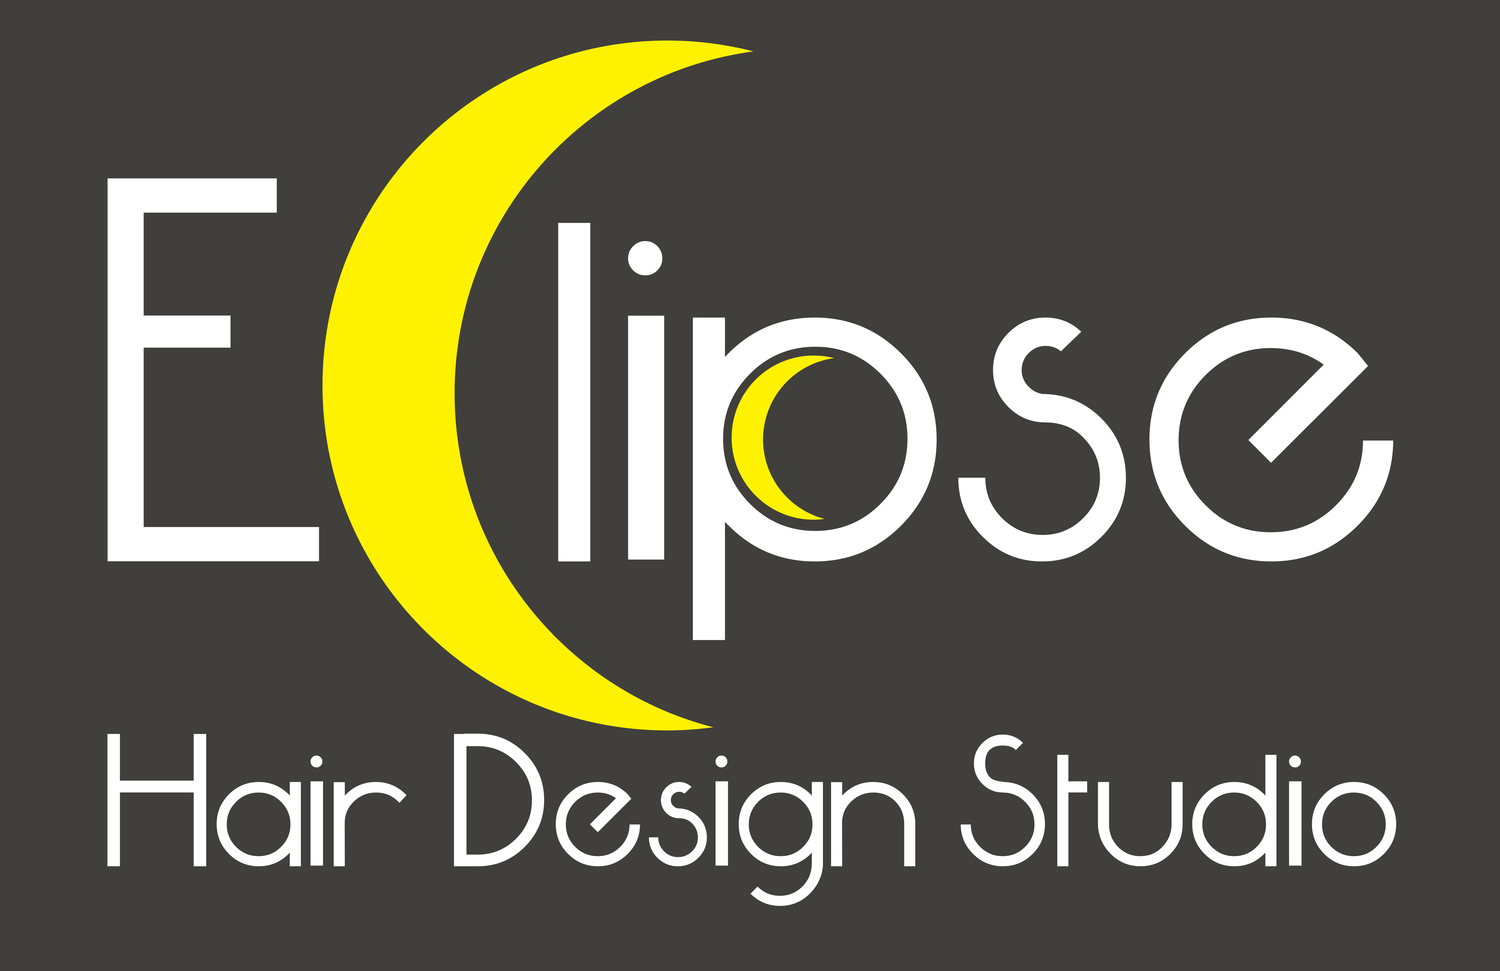 Eclipse Hair Design Studio